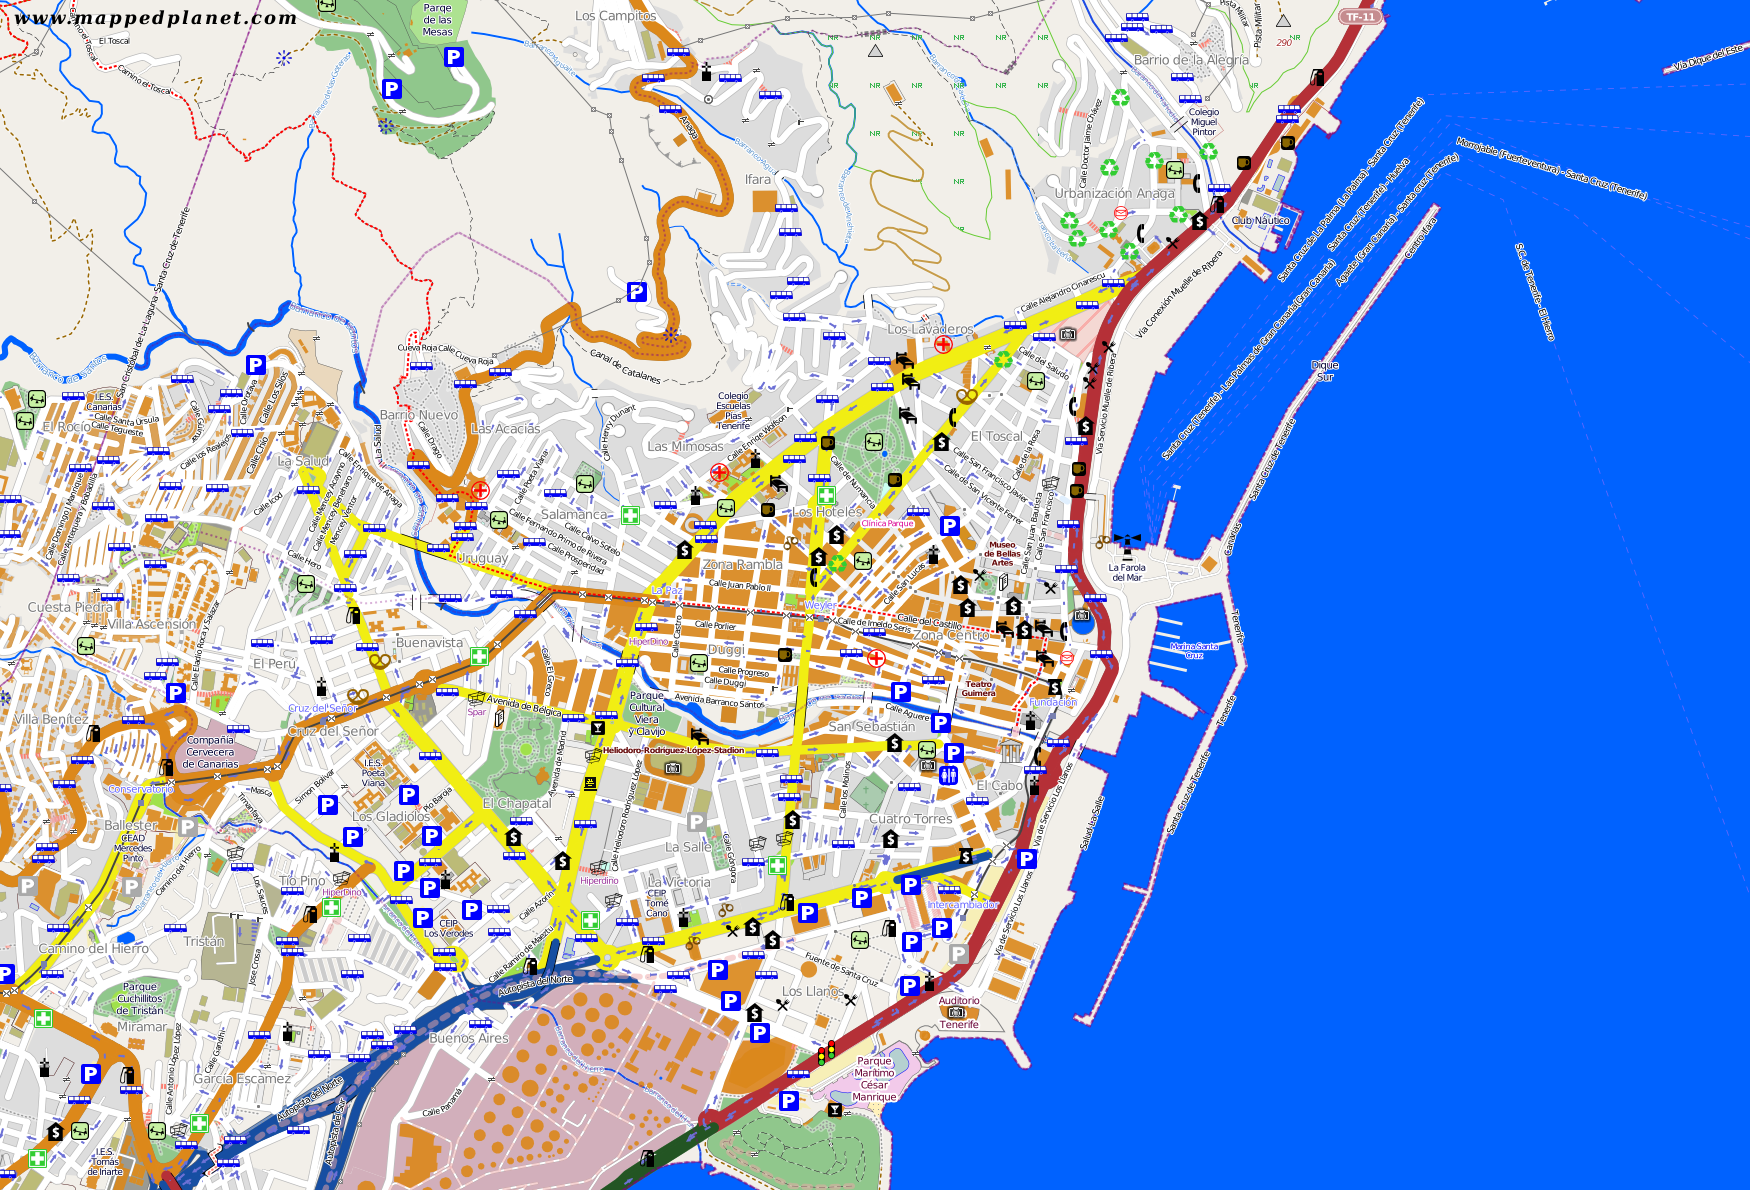 City maps Santa Cruz de Tenerife